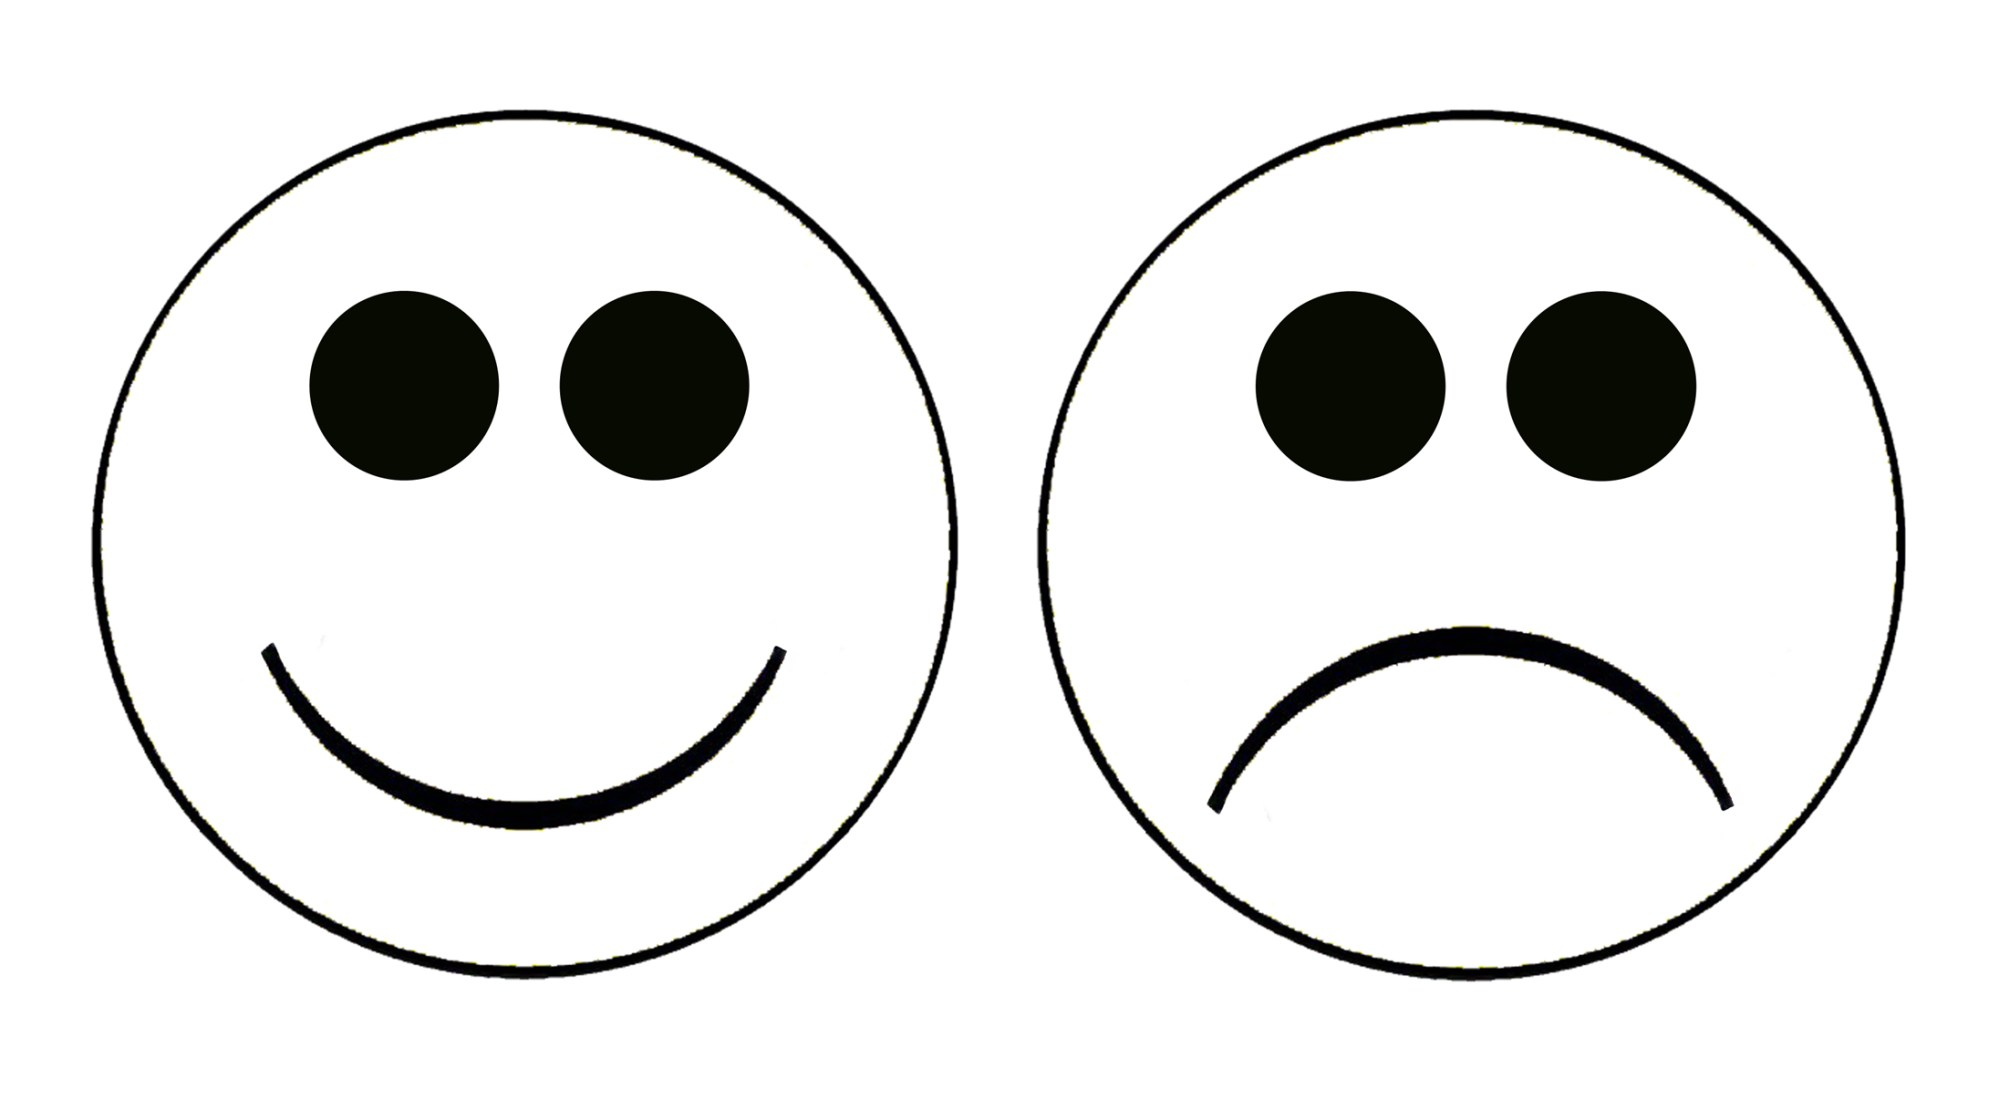 hight resolution of 2192x1206 smile clipart happy face symbol